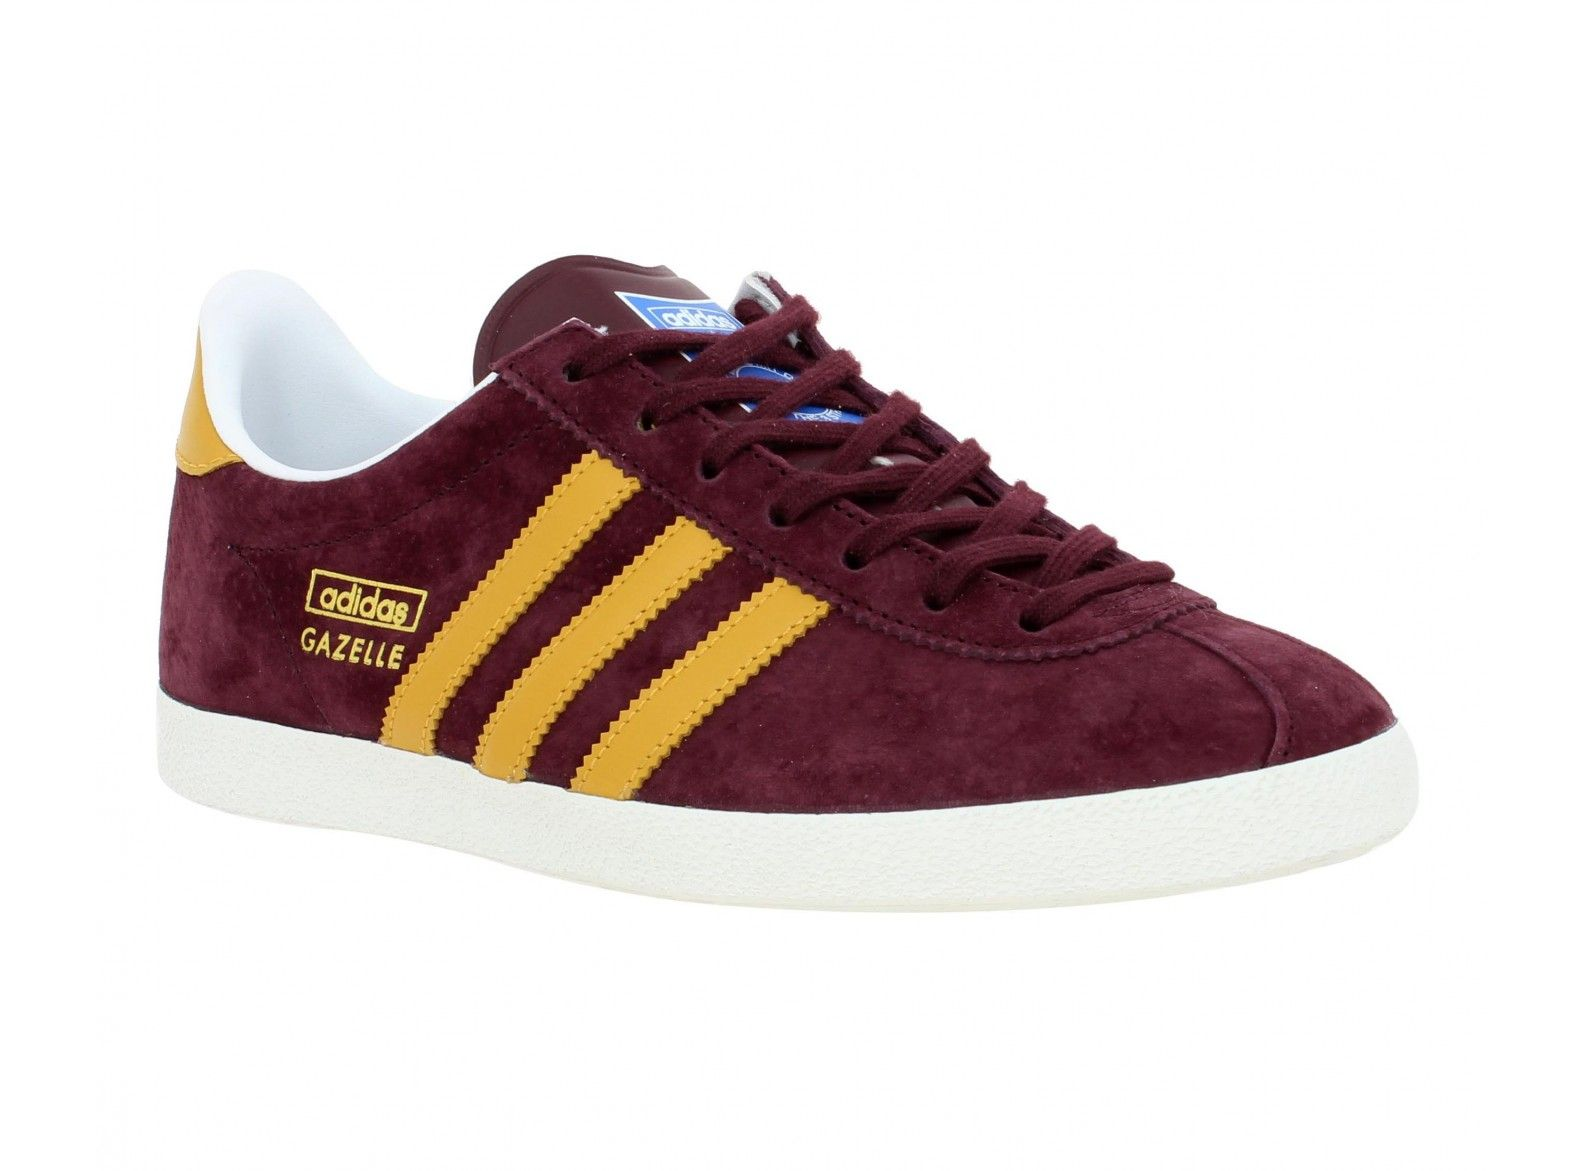 adidas gazelle velours femme prune gold chaussures adidas pinterest adidas. Black Bedroom Furniture Sets. Home Design Ideas